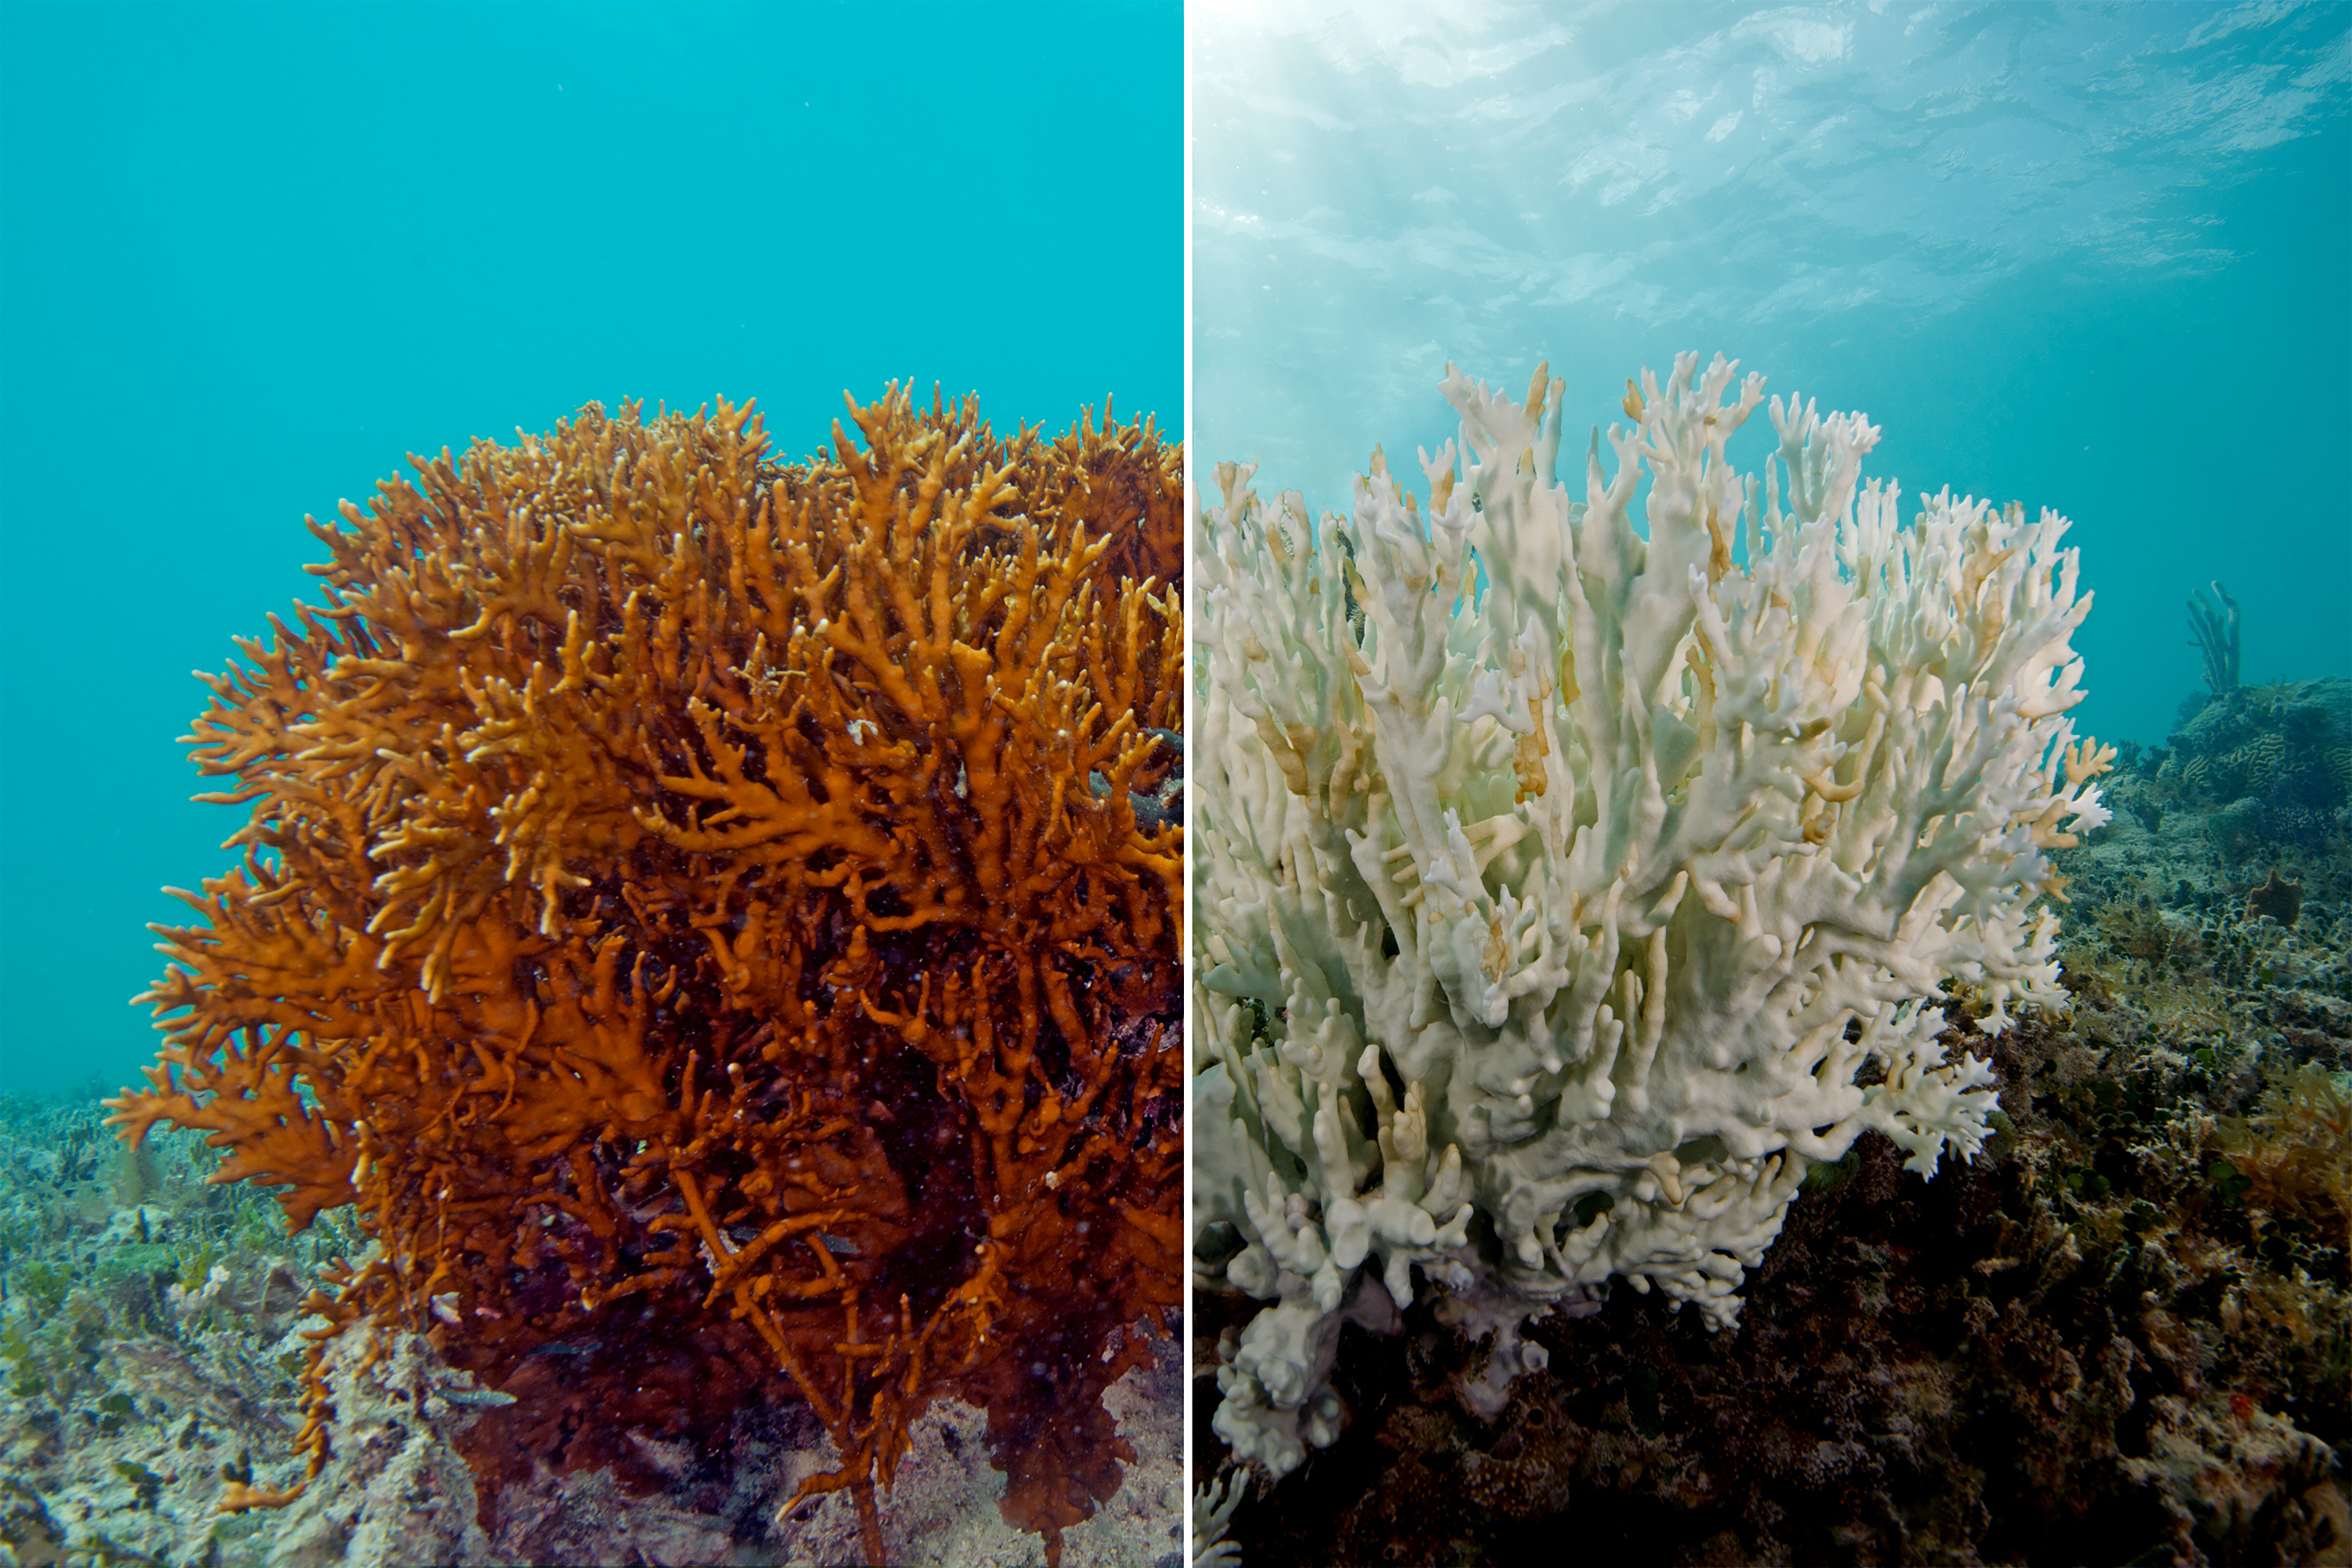 When the great reef becomes a great responsibility: Reversing our legal and moral failures